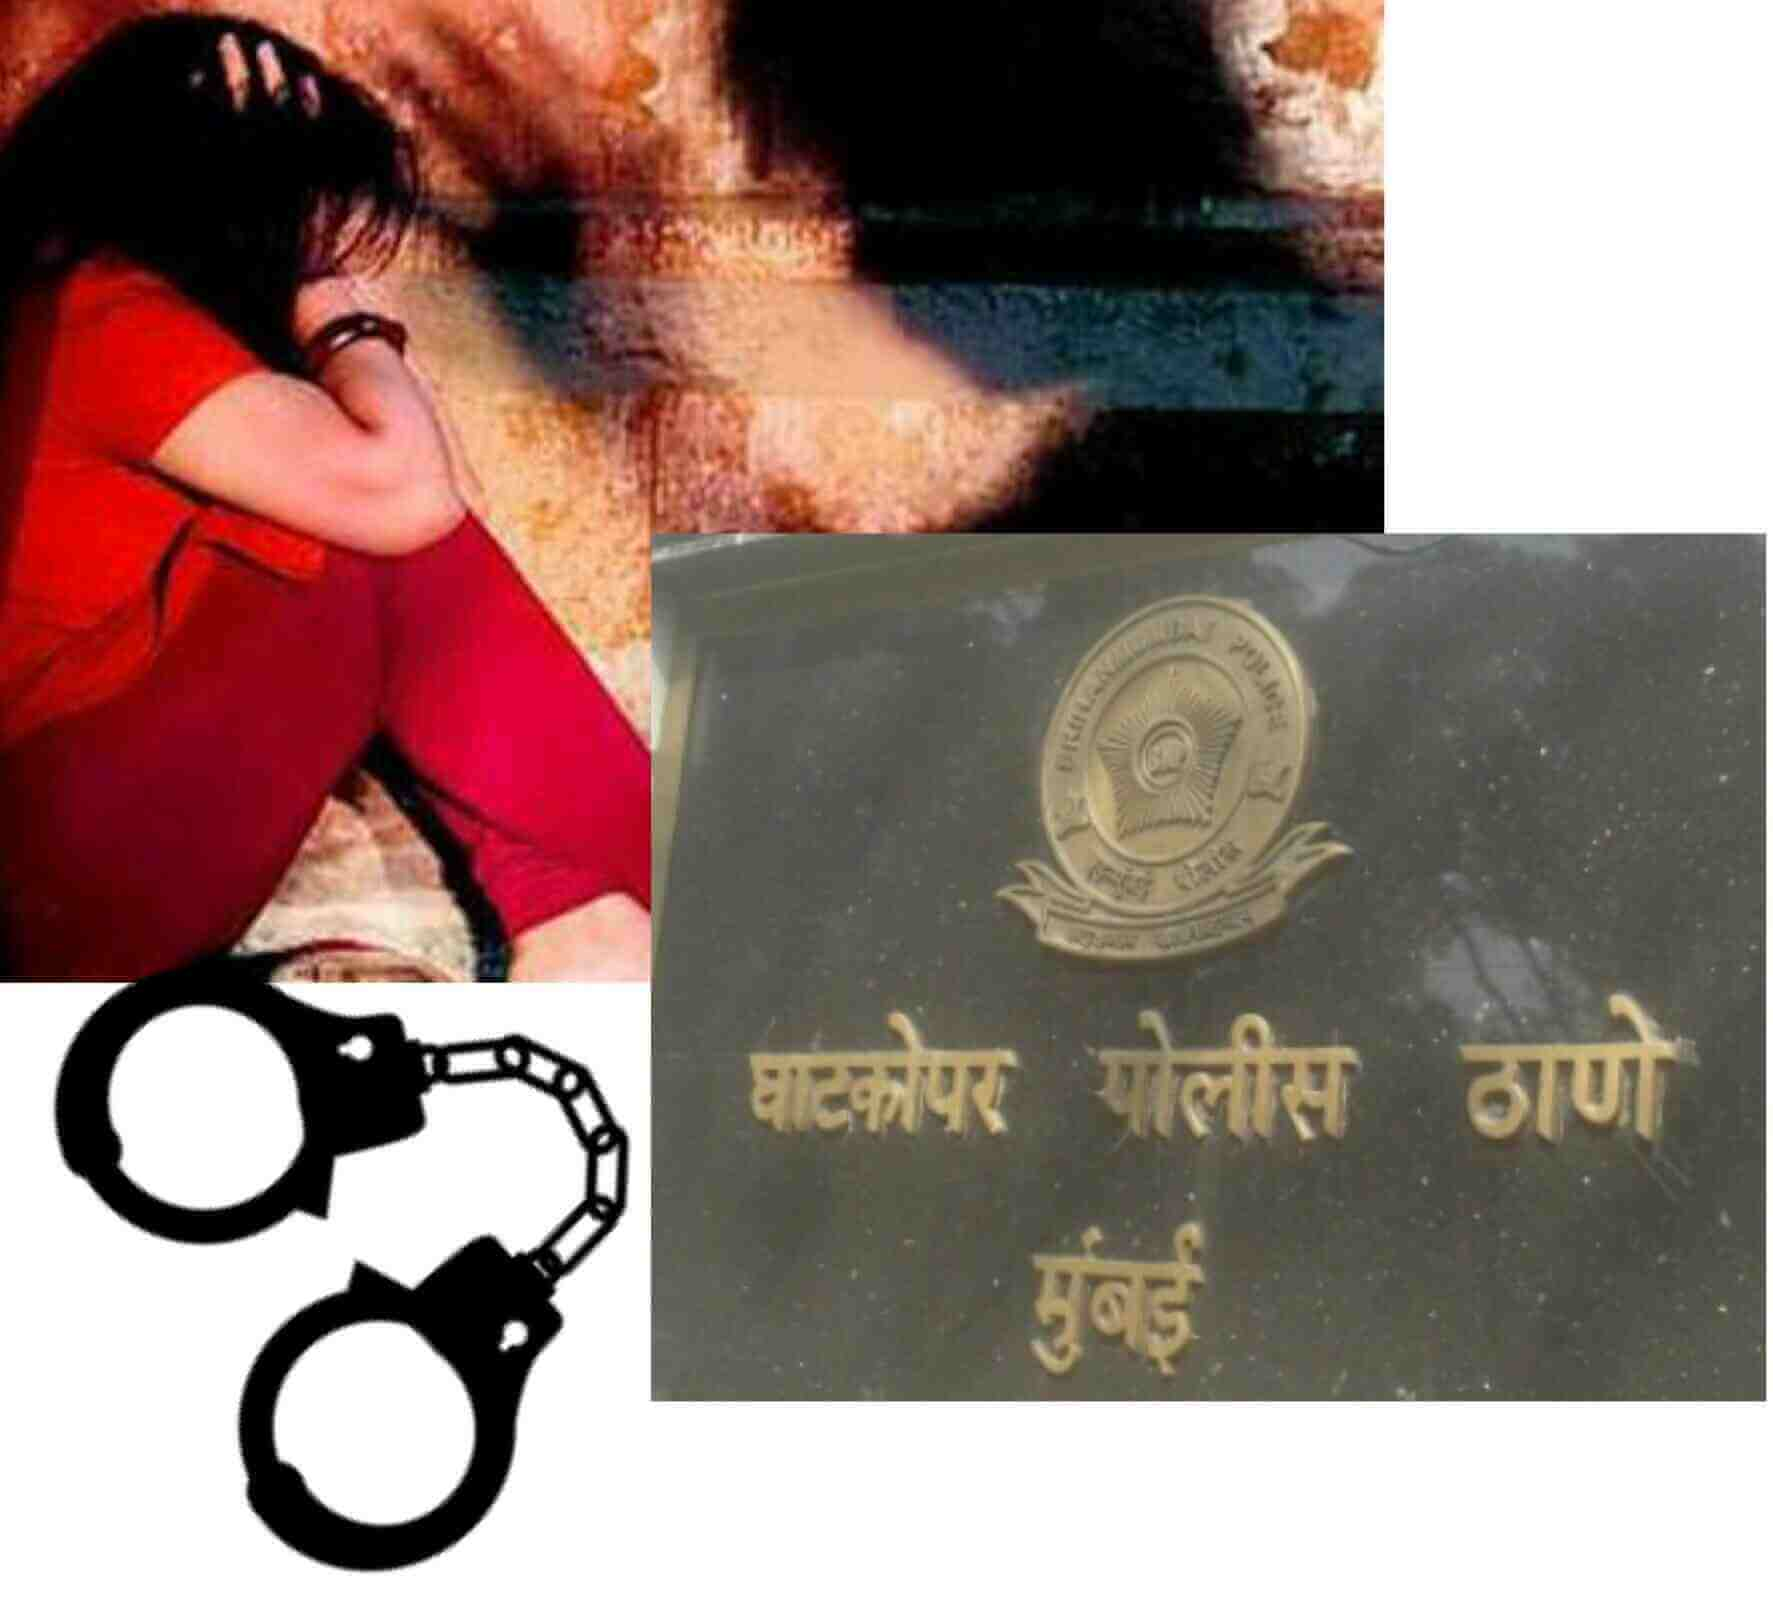 Ghatkopar Police Arrests Molester, Khadi no. 3 girl molested, khadi number 3 girl molested and beaten up